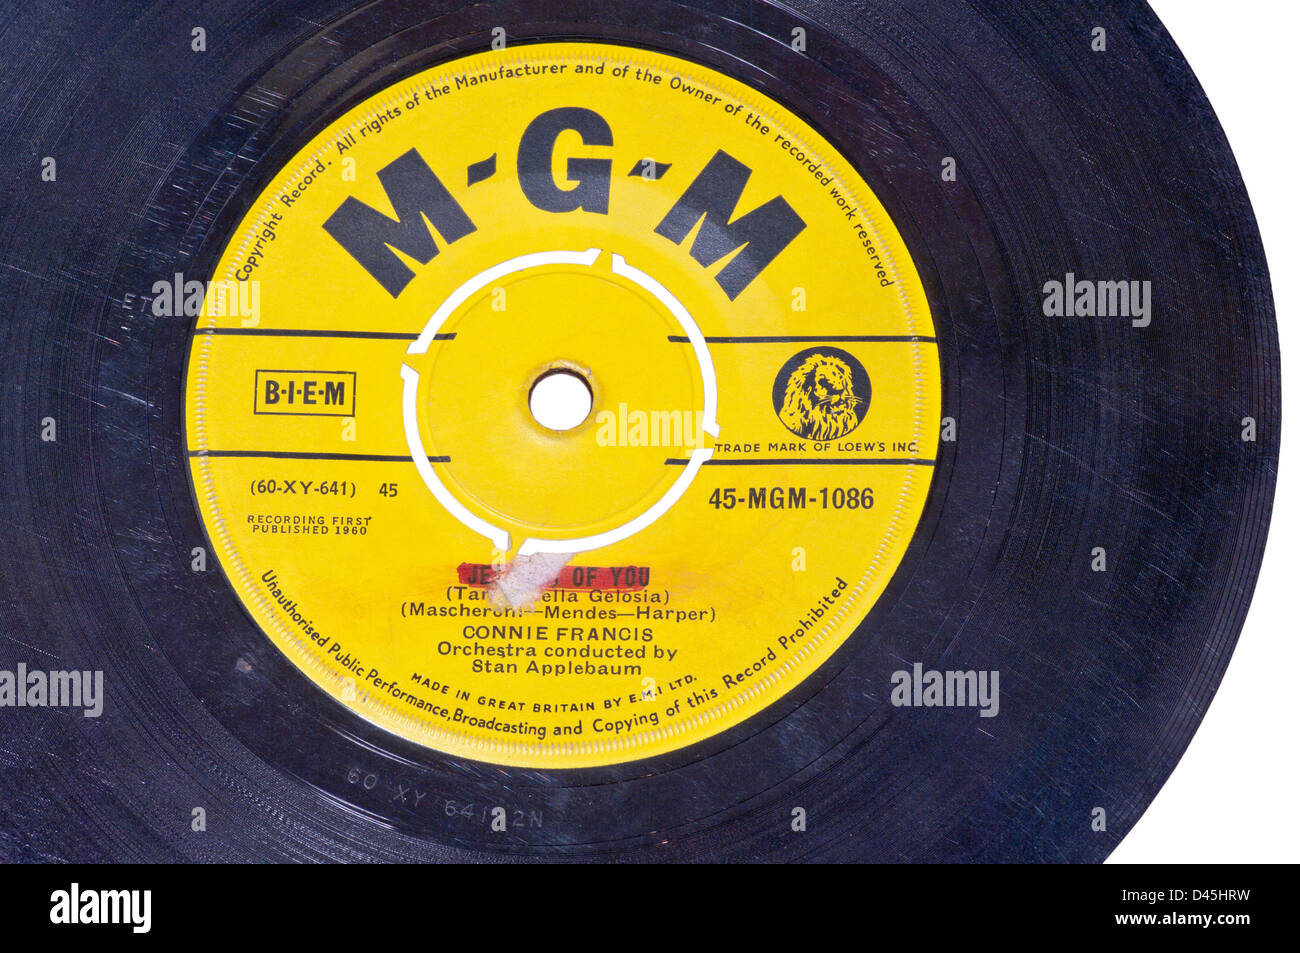 MGM Record Label on a 45 RPM Single Vinyl Record - Stock Image